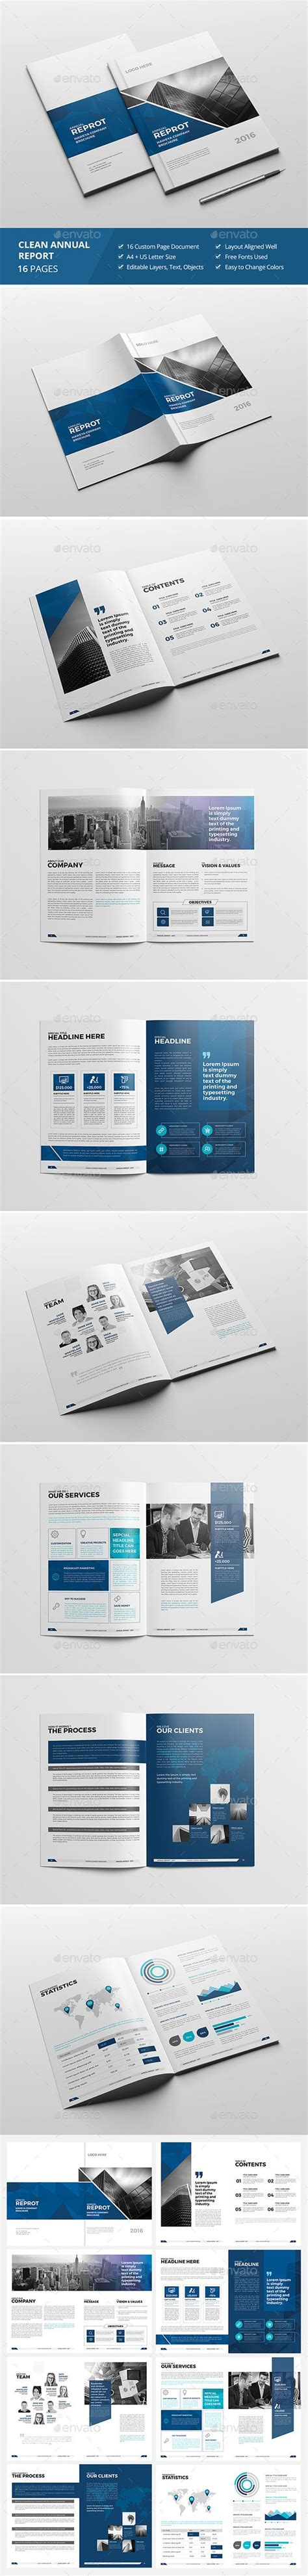 Https Graphicriver Net Item Divided Annual Report Template 13185075 817 Best Images About Type Layout Inspiration On